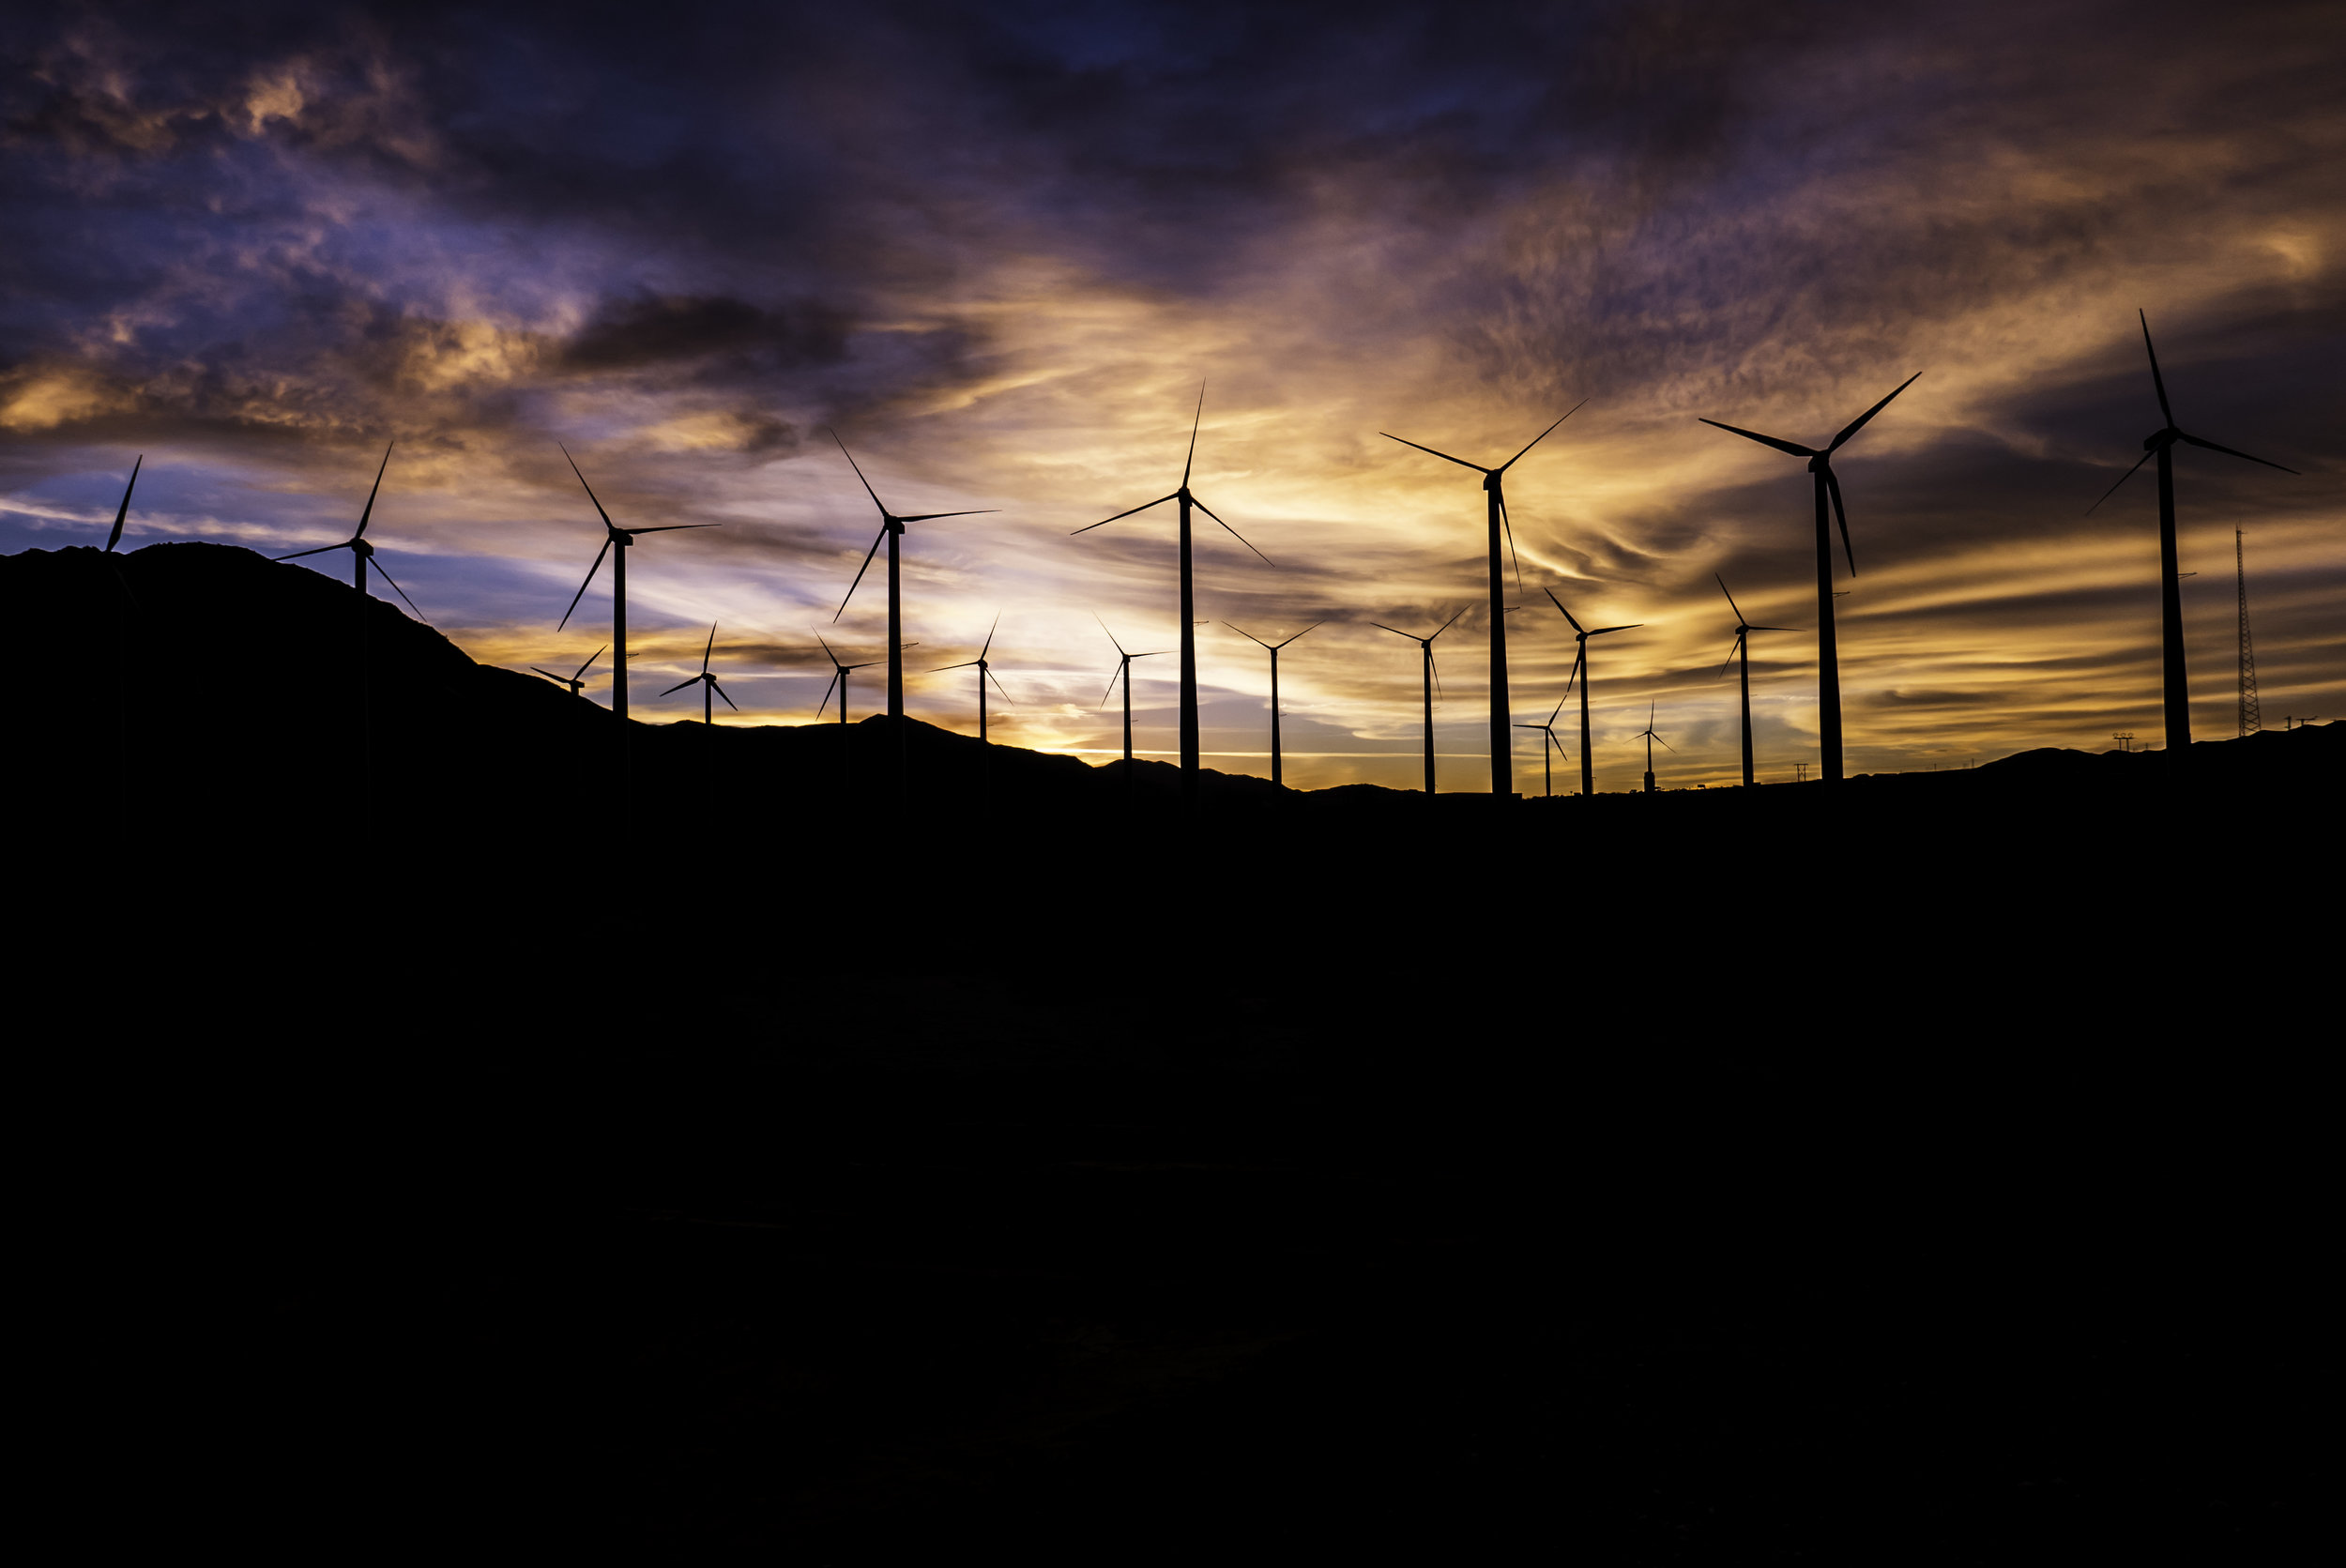 Renewable Energy - Wind Farms and Solar   We are working with leading USA based firms specialising in large scale wind farms to open markets for them in Australia. We are currently providing regulatory briefs on the potential starting points for investment based on Federal and State regulatory dynamics. In return these same firms are helping us analyse the USA market for the export of a brand new revolutionary ground mounted solar system built and developed Australia. CLICK